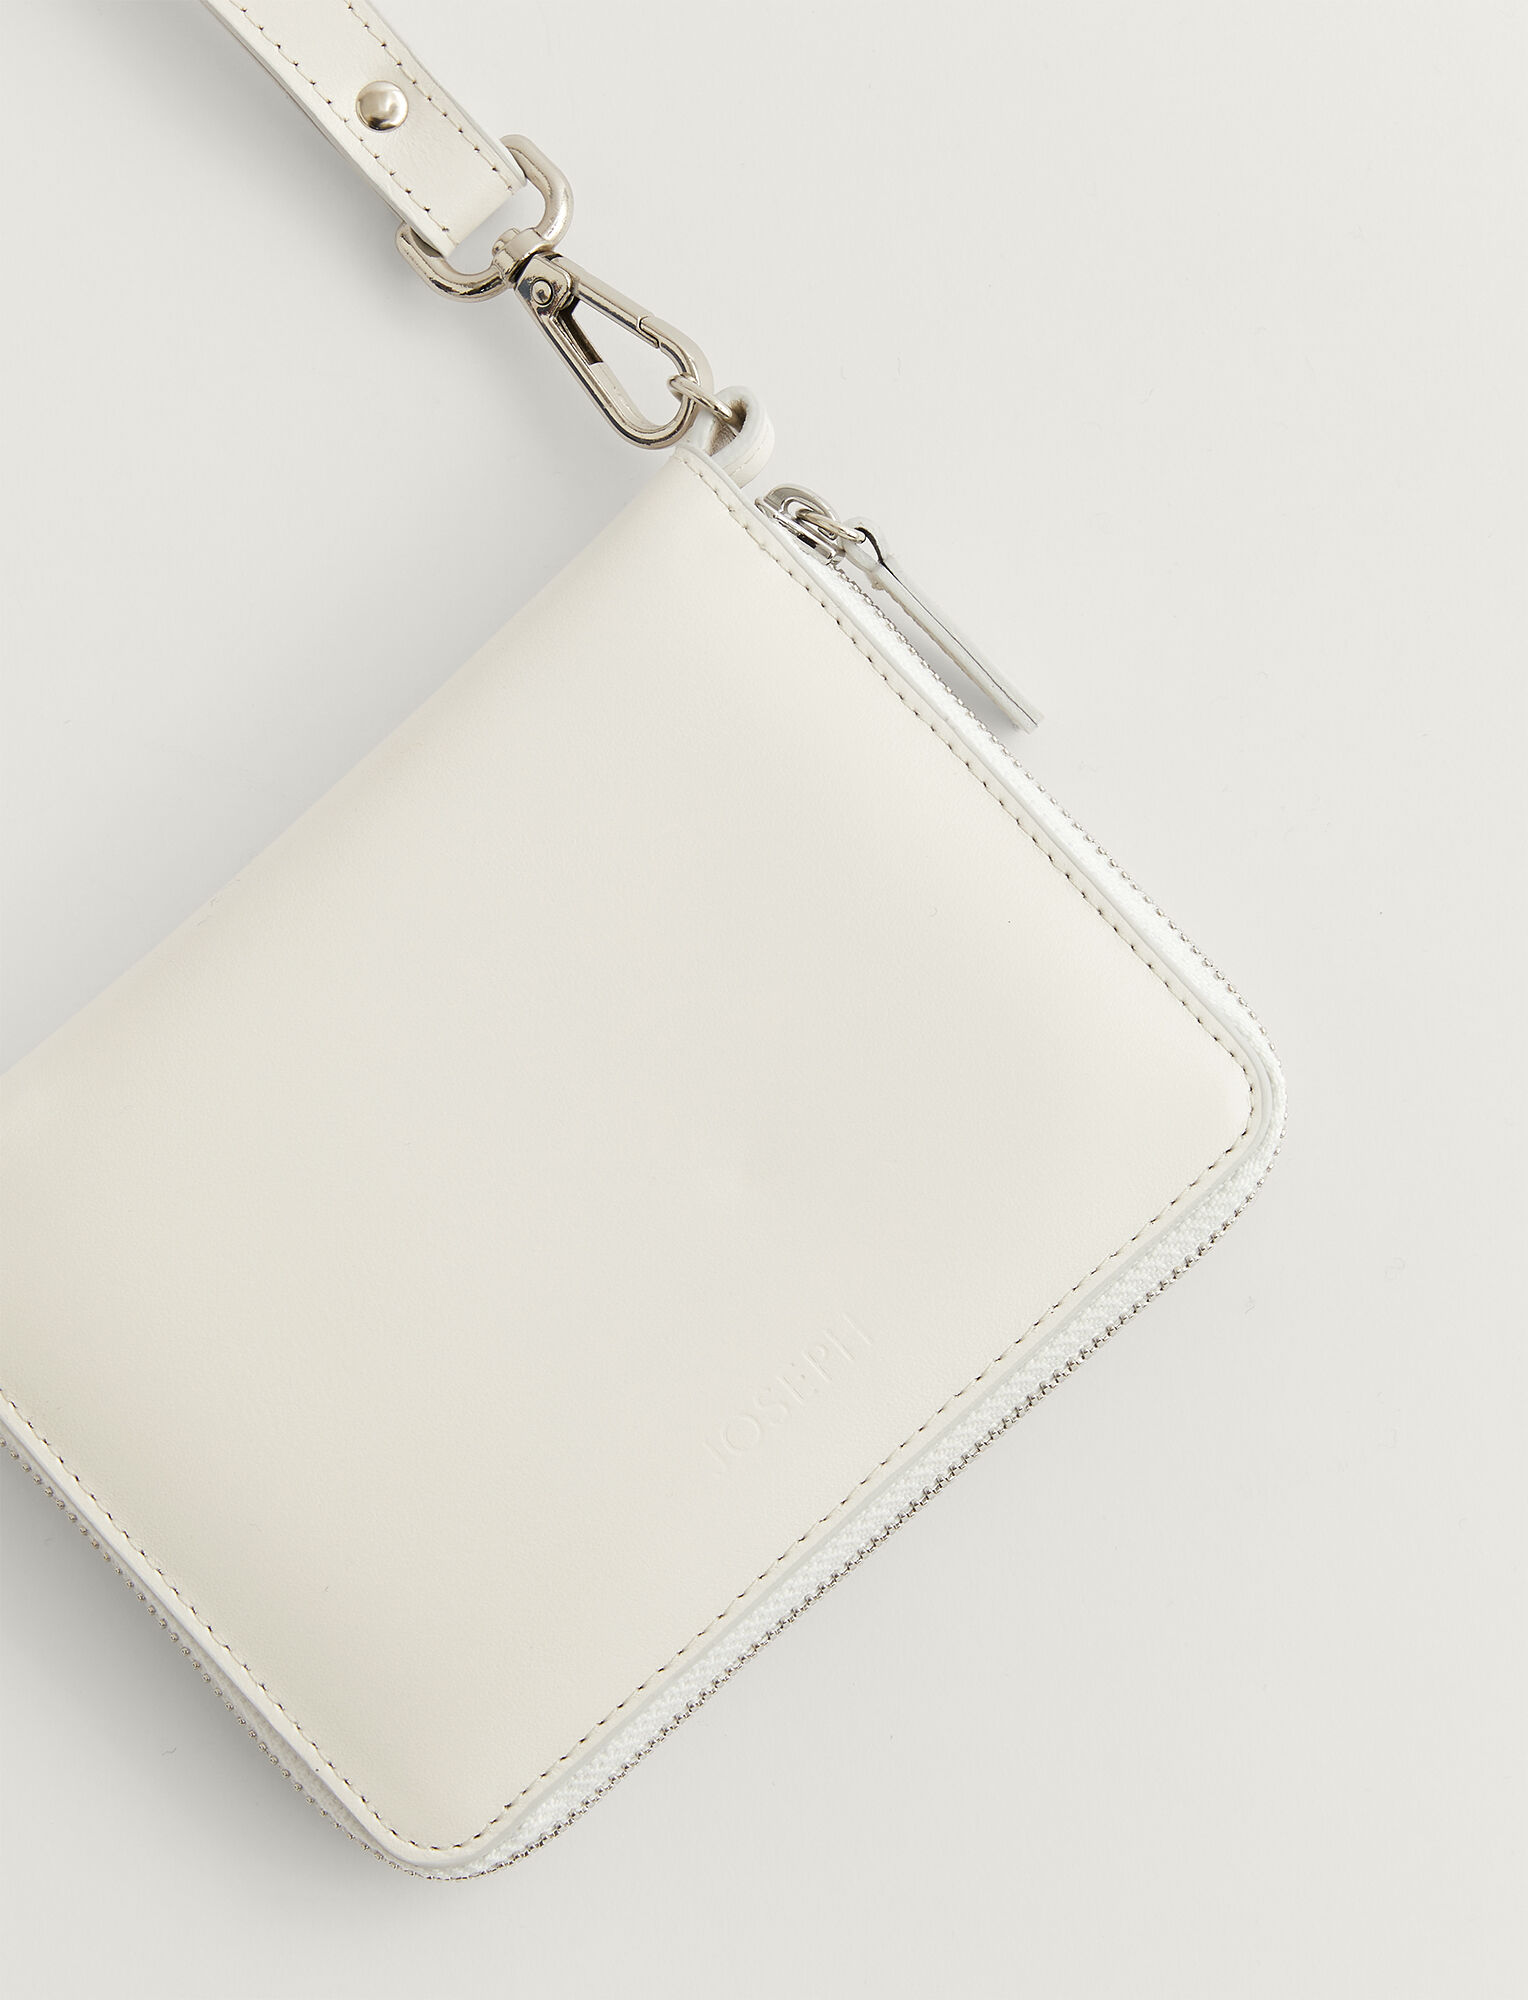 Joseph, Leather Strap Zip Wallet, in OFF WHITE